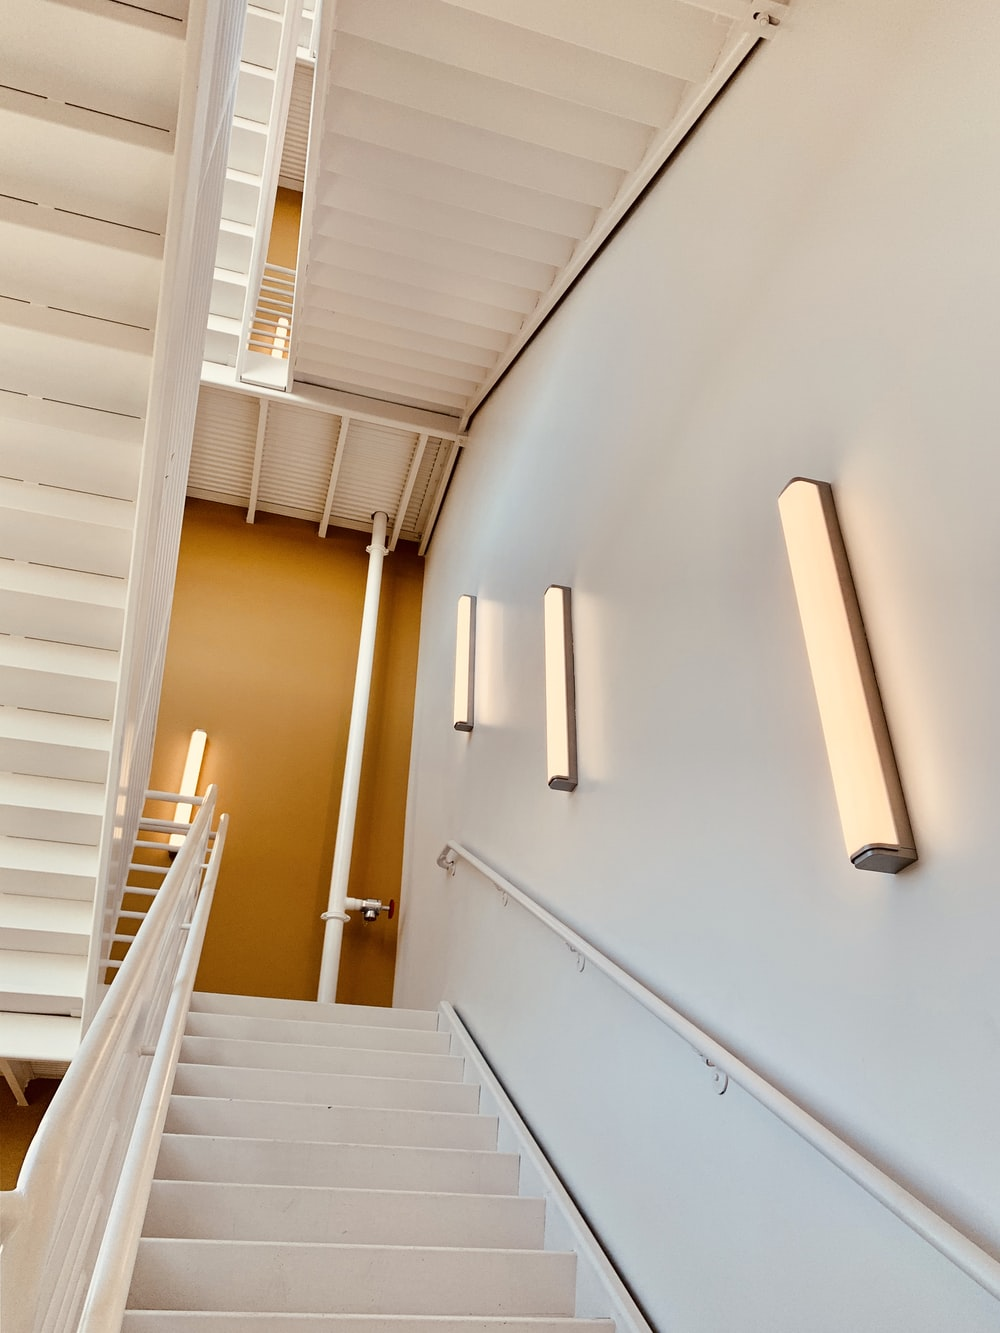 white painted wall and stairs close-up photography